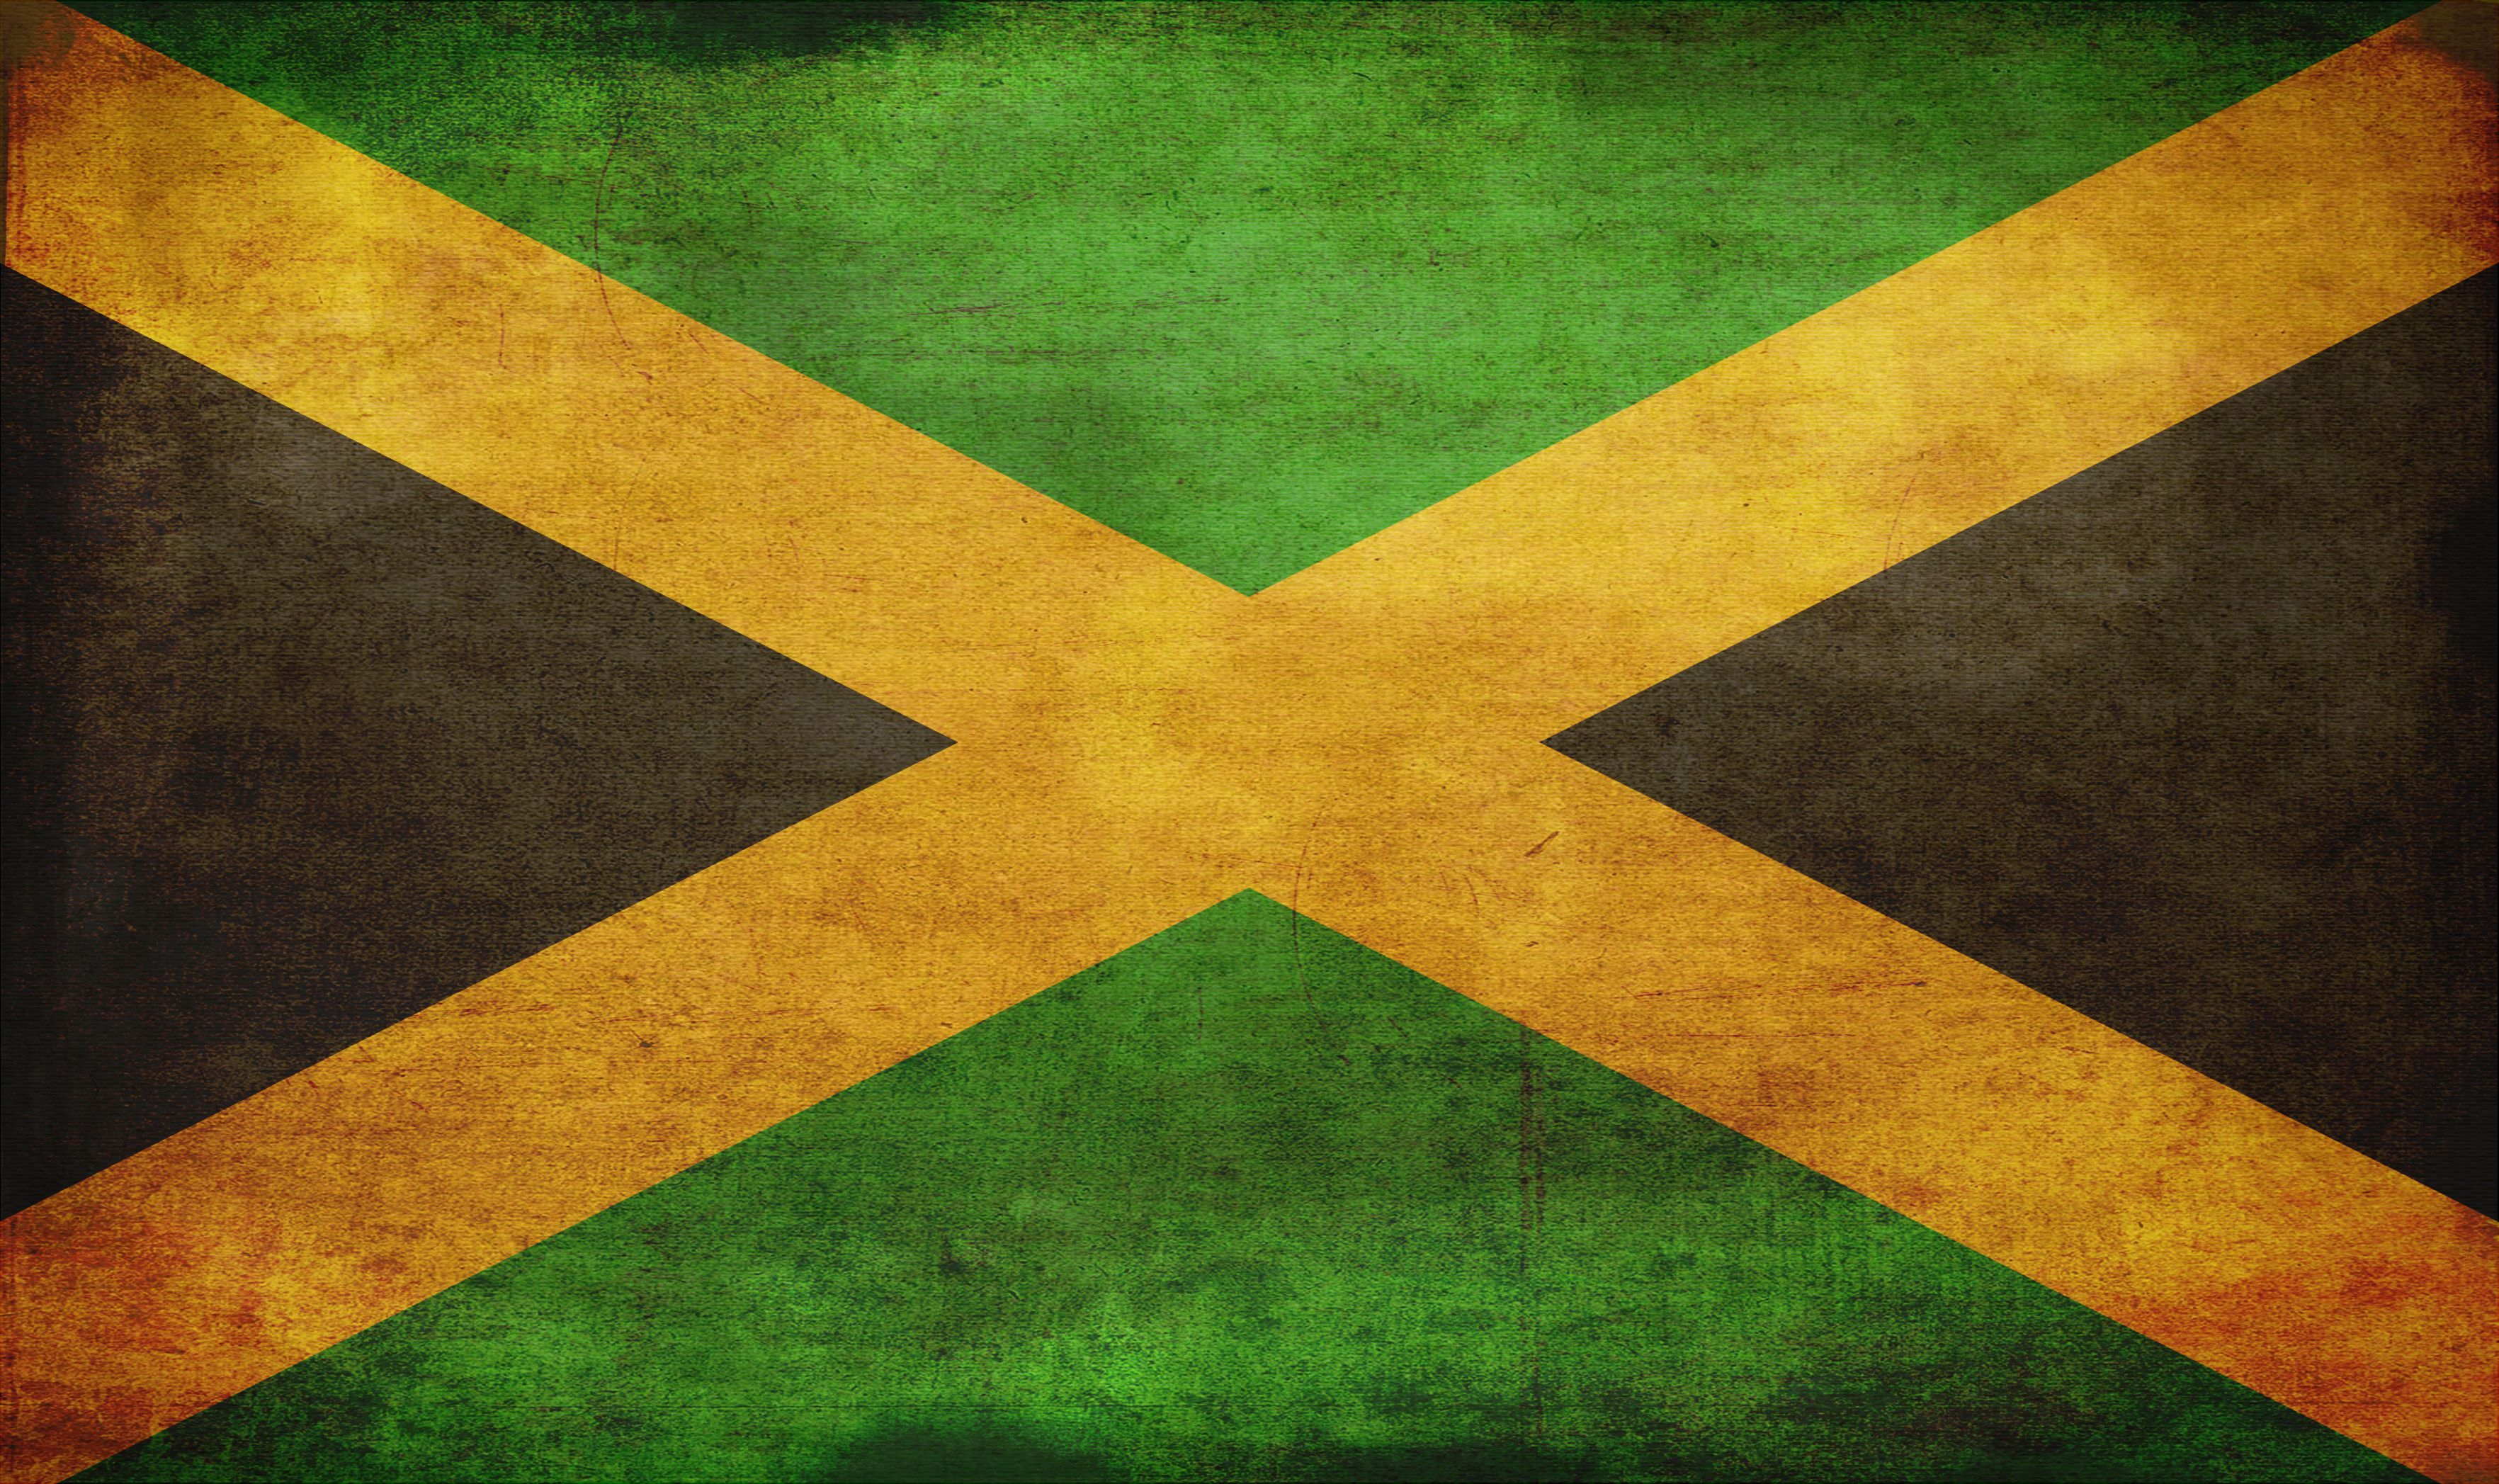 Hardships There Are But The Land Is Green And The Sun Shineth Jamaica Flag Jamaican Culture Jamaican Flag